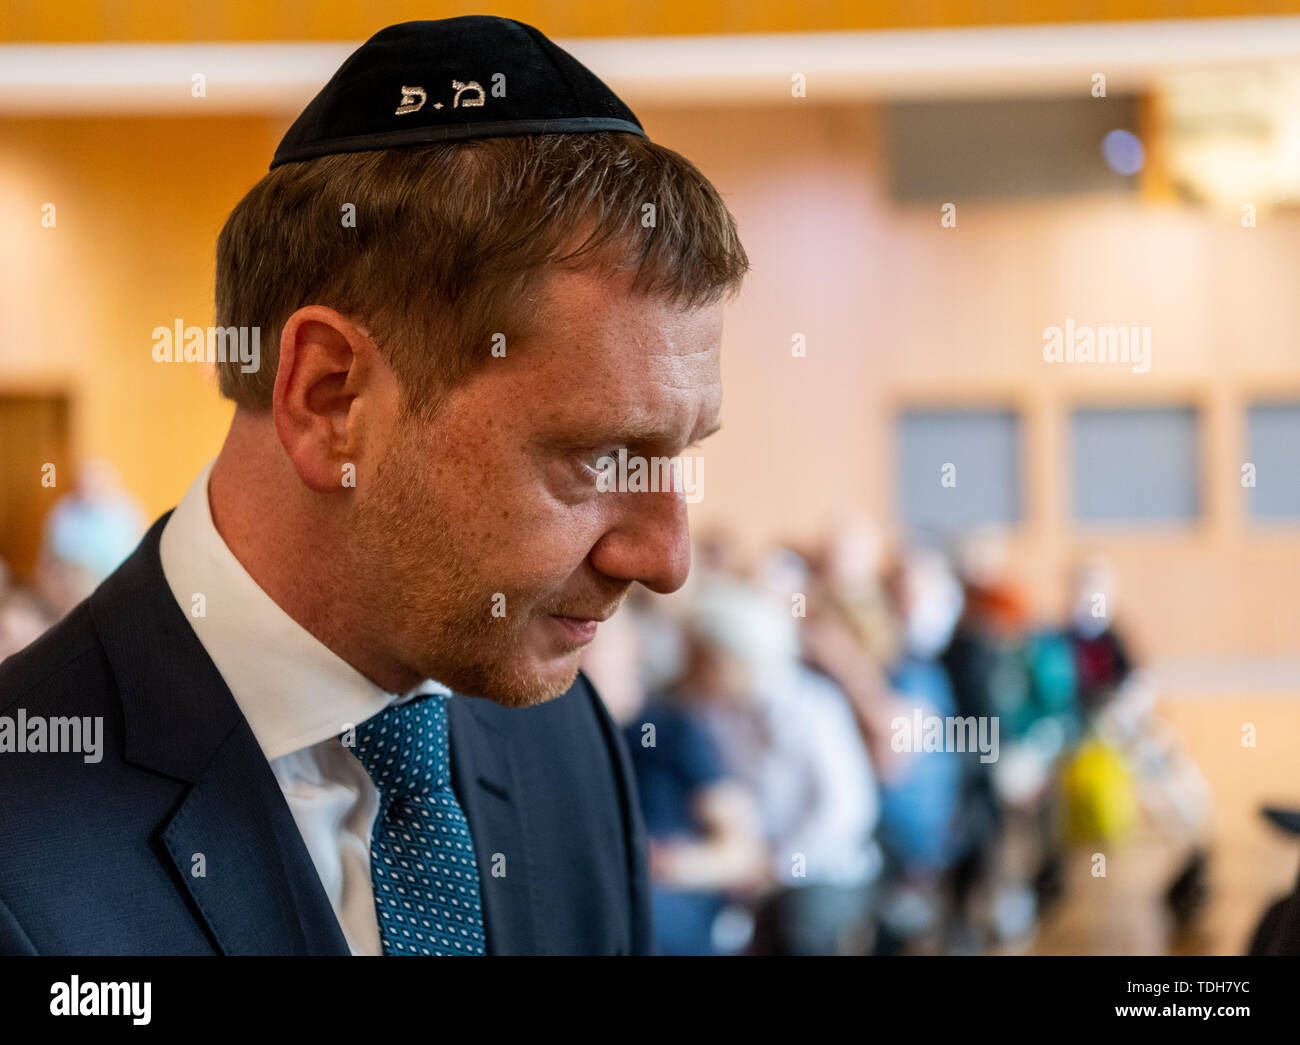 Dresden, Germany. 16th June, 2019. Michael Kretschmer (CDU), Prime Minister of Saxony, wears a kippa at the ceremonial inauguration of the new Tora role for Dresden in the city hall. Credit: Robert Michael/dpa-Zentralbild/dpa/Alamy Live News - Stock Image